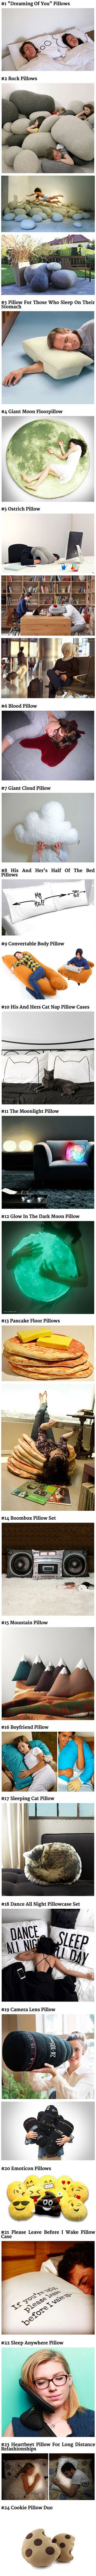 Here are some cool, funny and creative pillow designs that think outside the box.